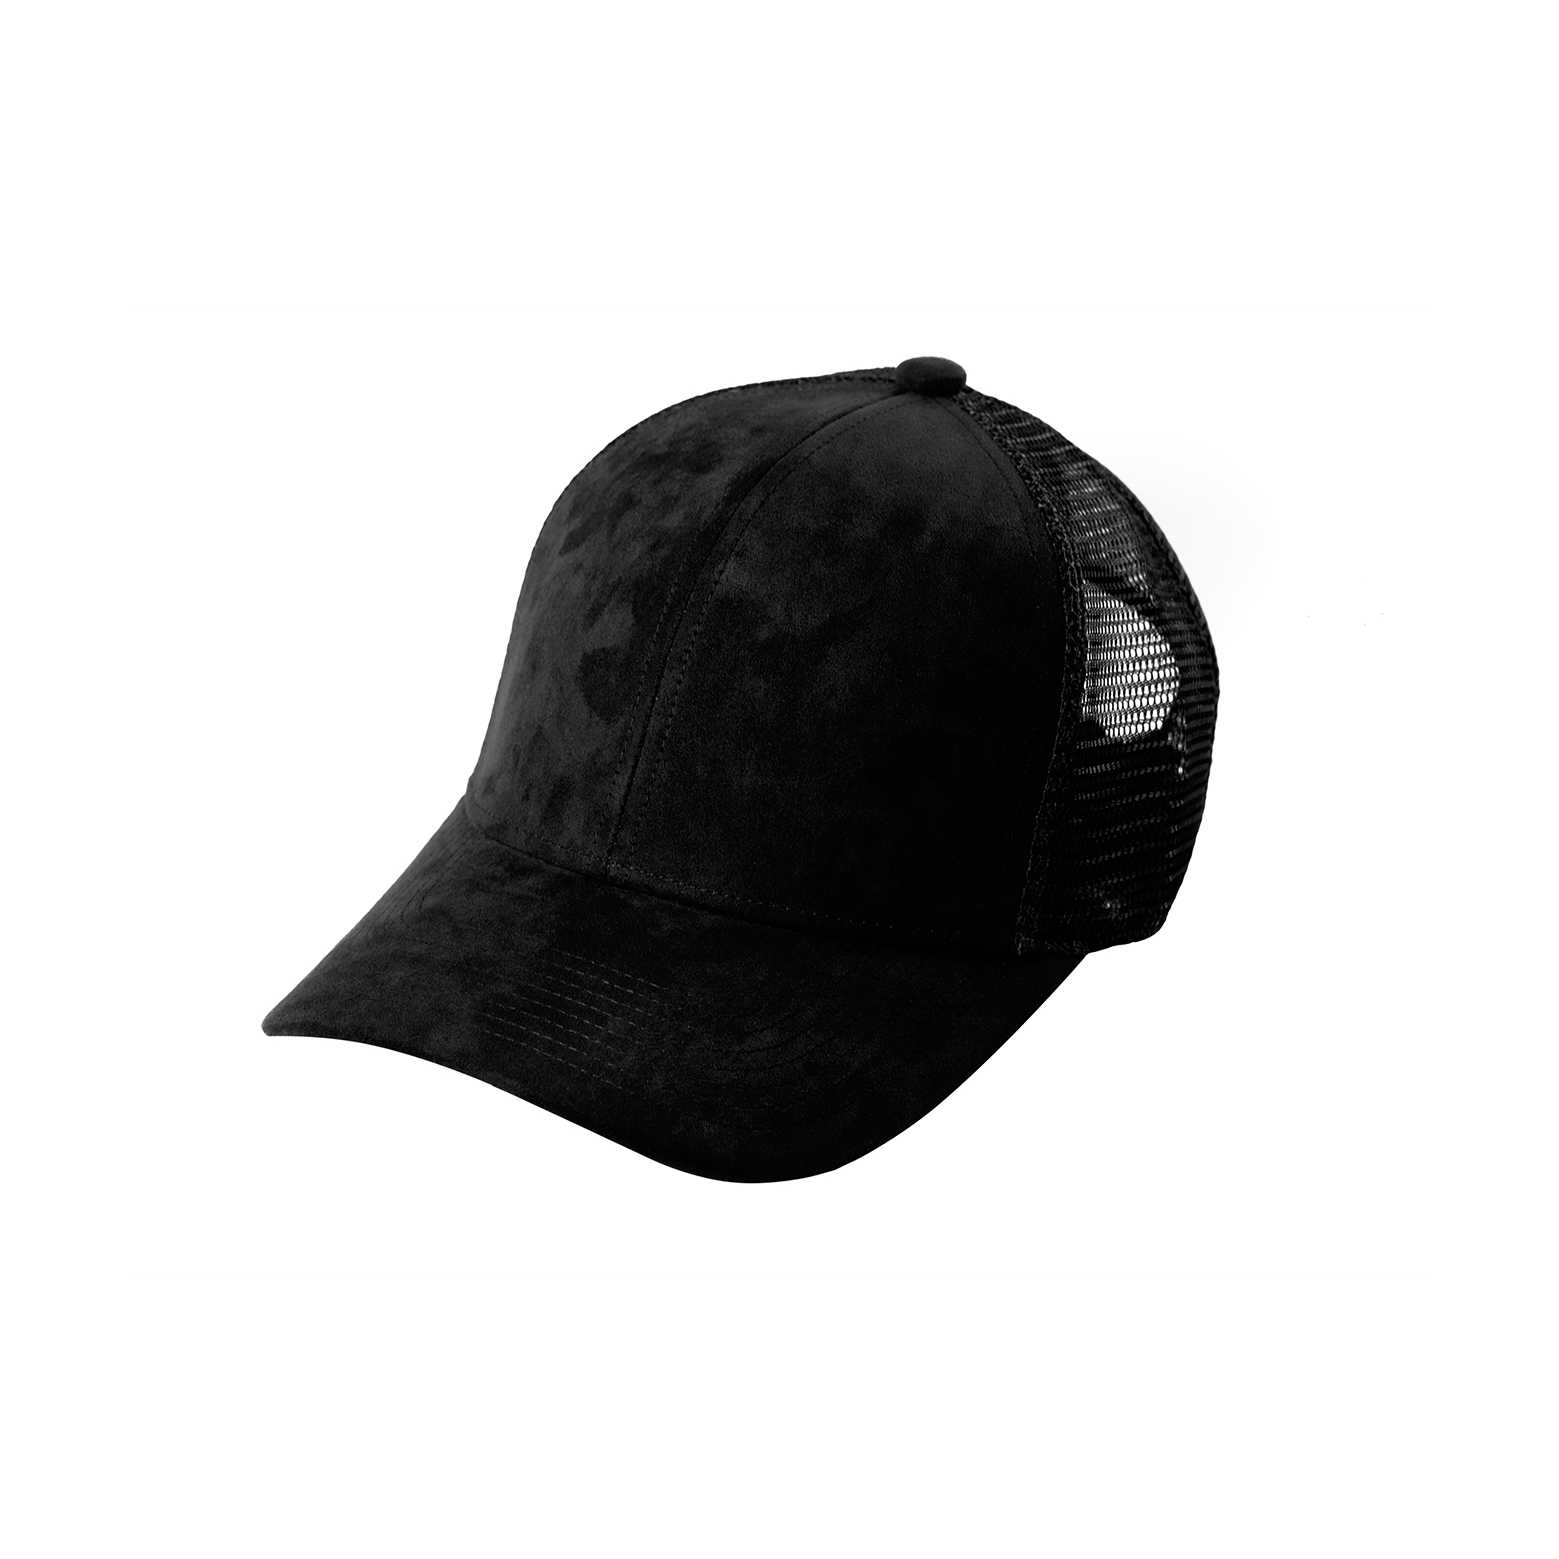 TRUCKER BLACK SUEDE FRONT SIDE